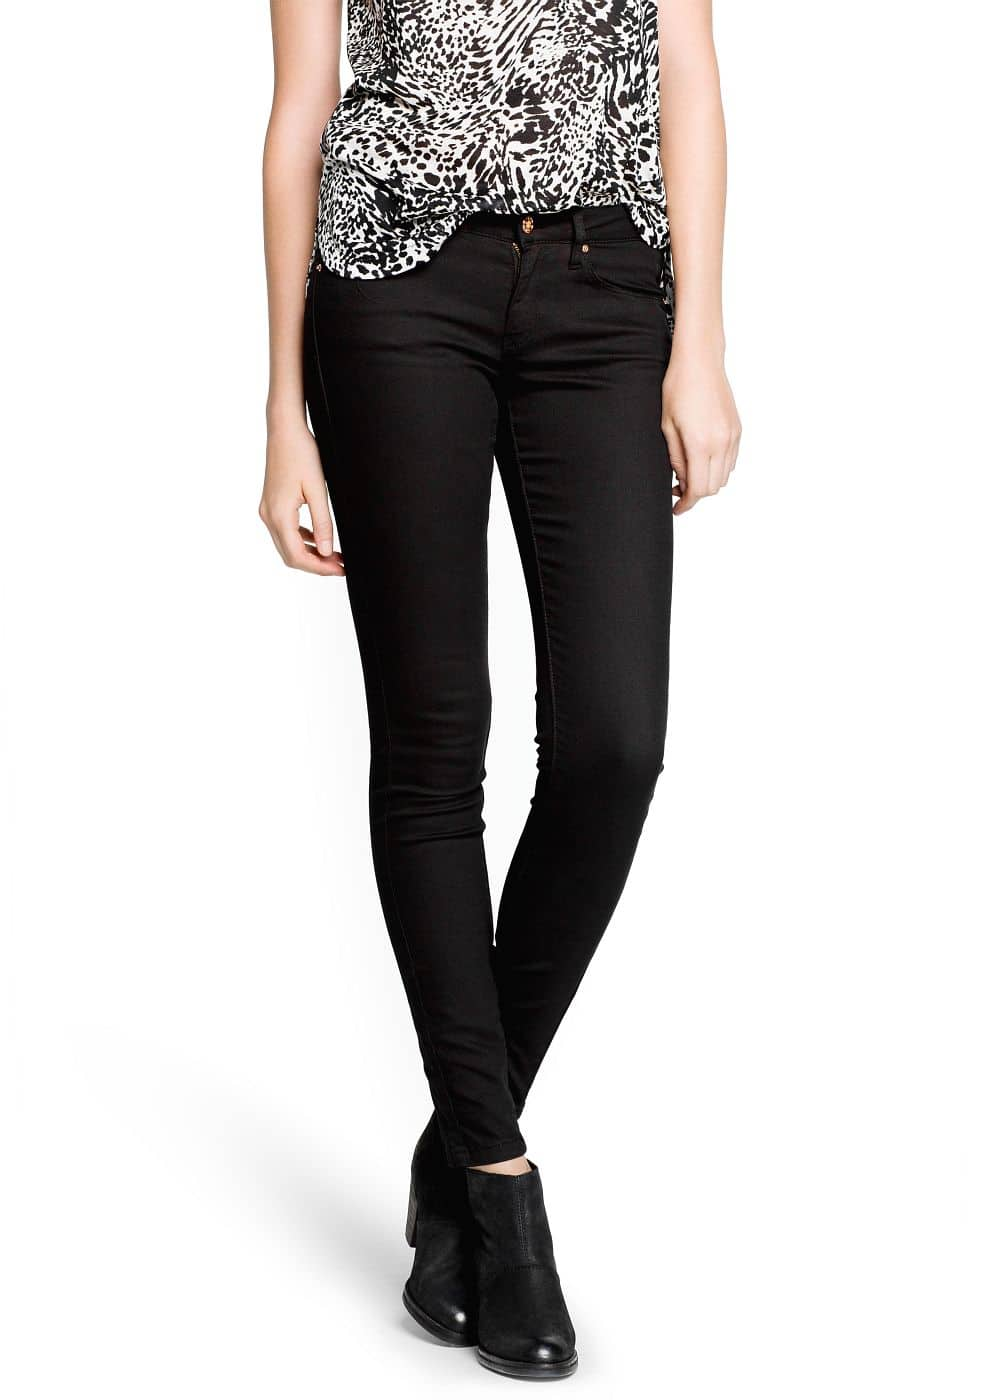 Super Skinny Black Jeans Womens - Jon Jean